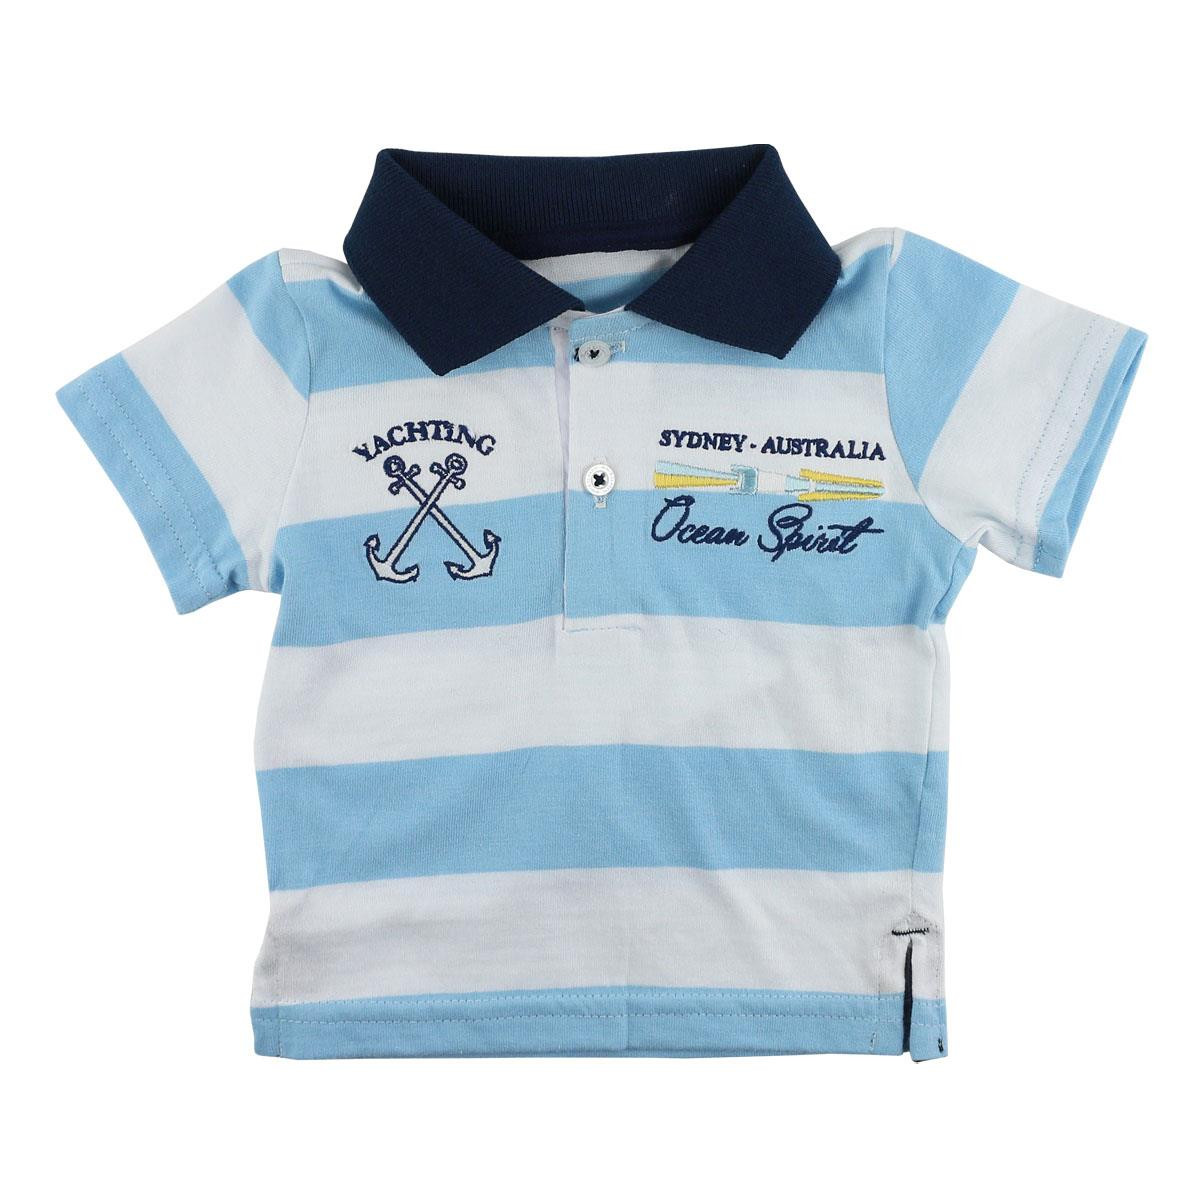 CAMISETA POLO PARA BEBÊ YACHTING MINI & KIDS